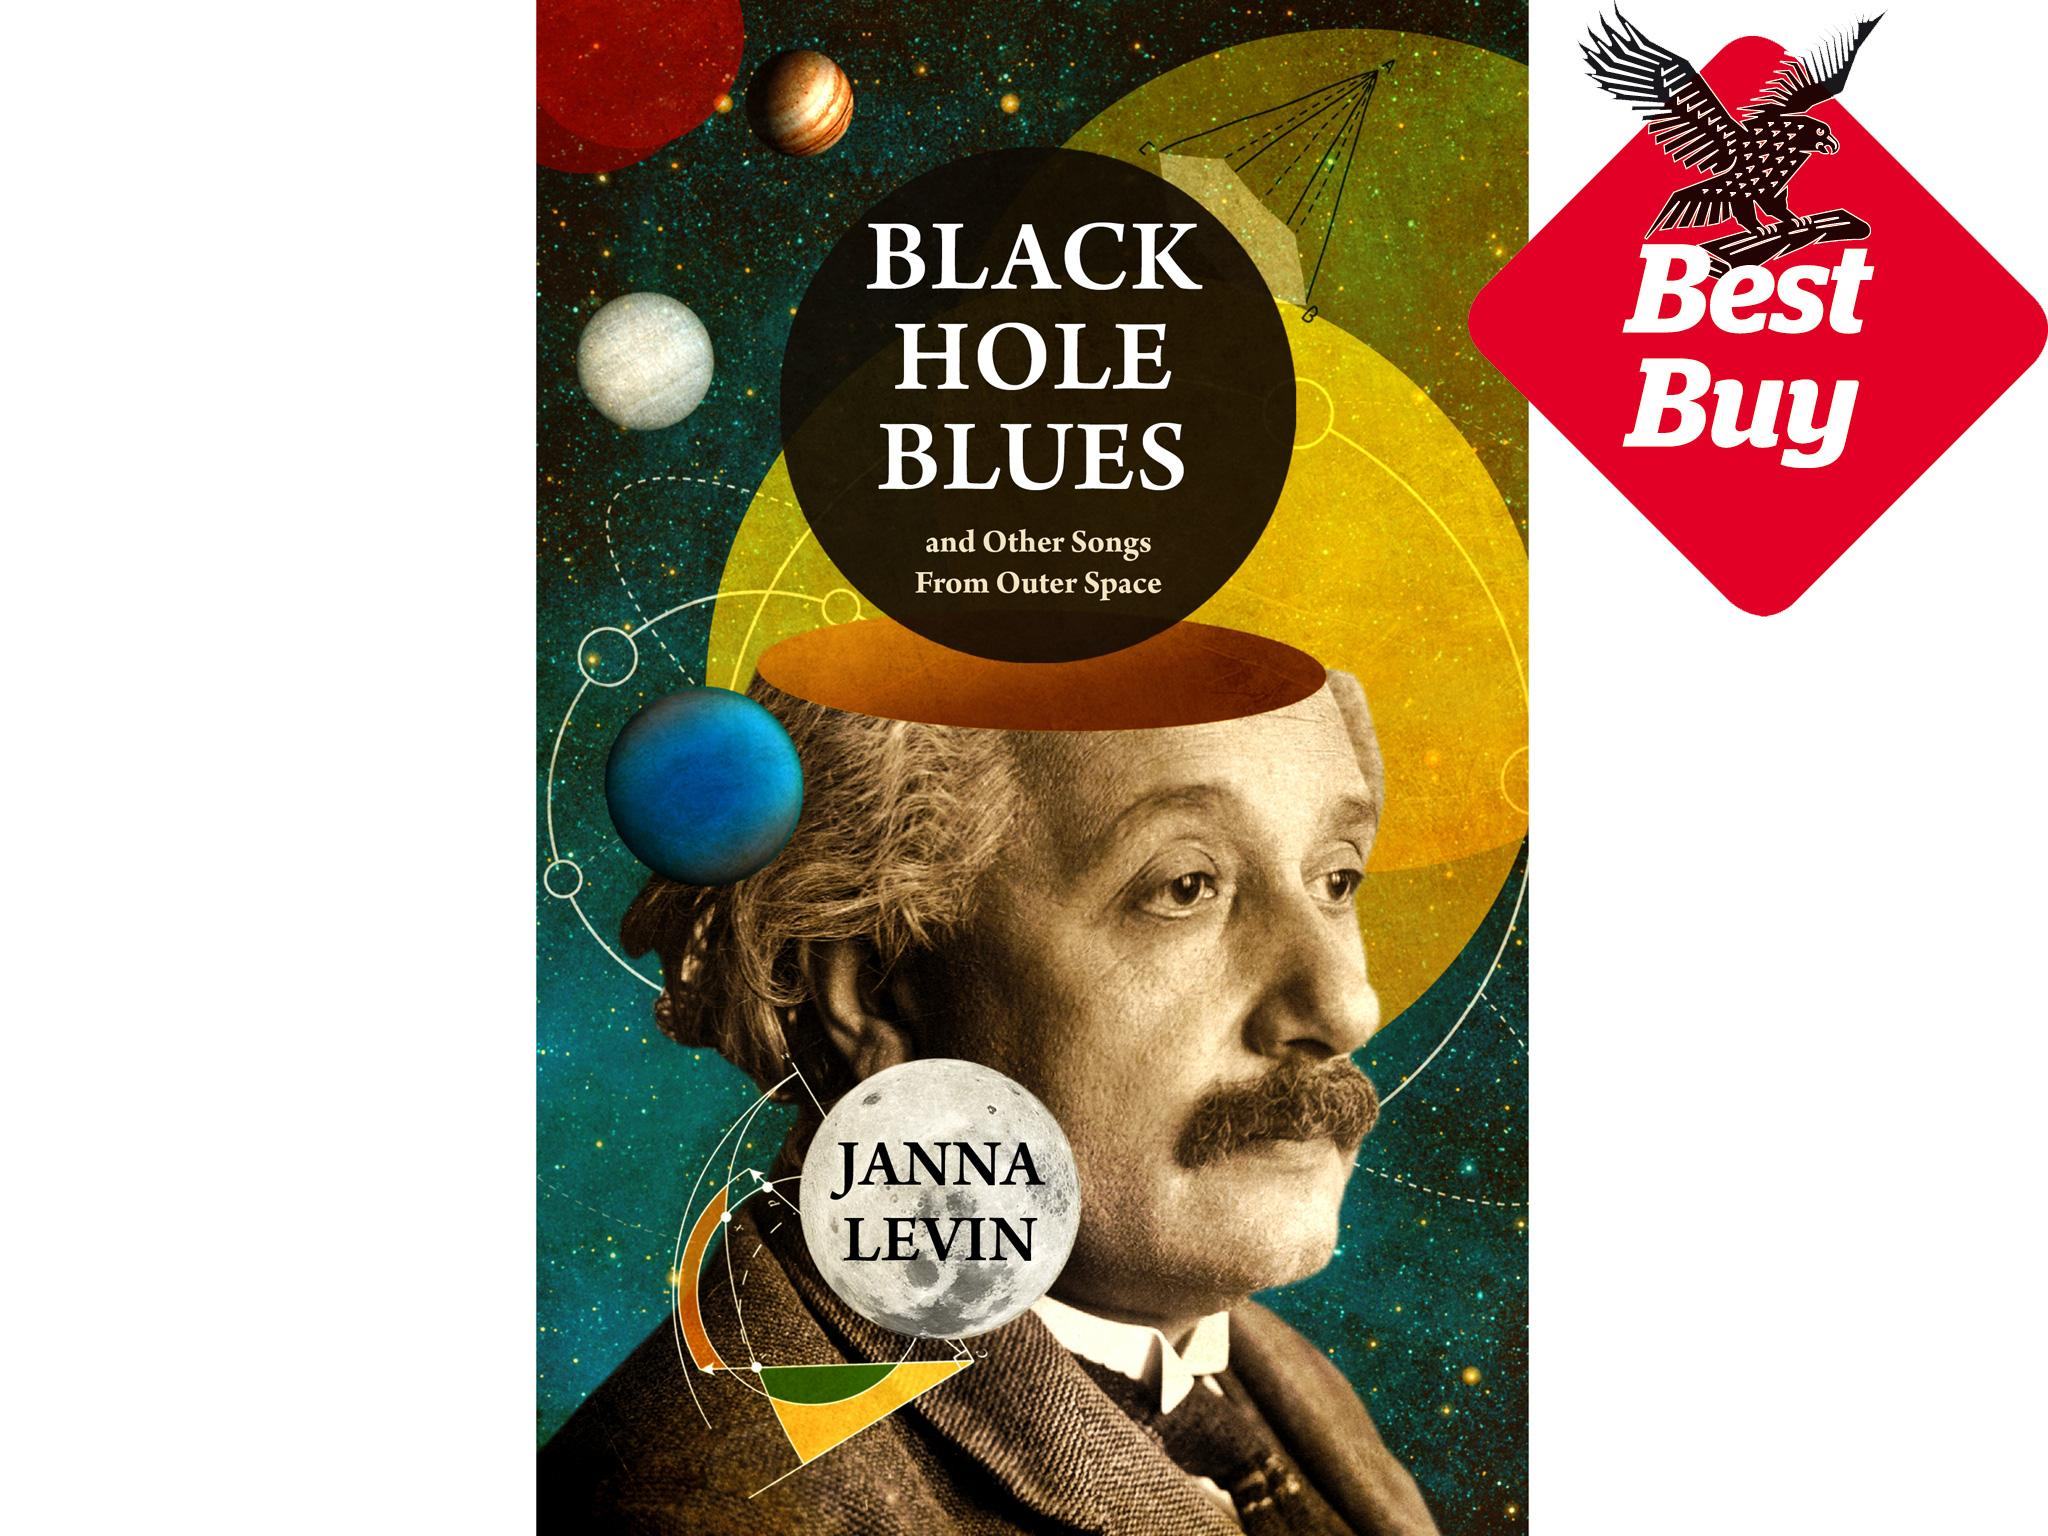 9 Best Popular Science Books The Independent